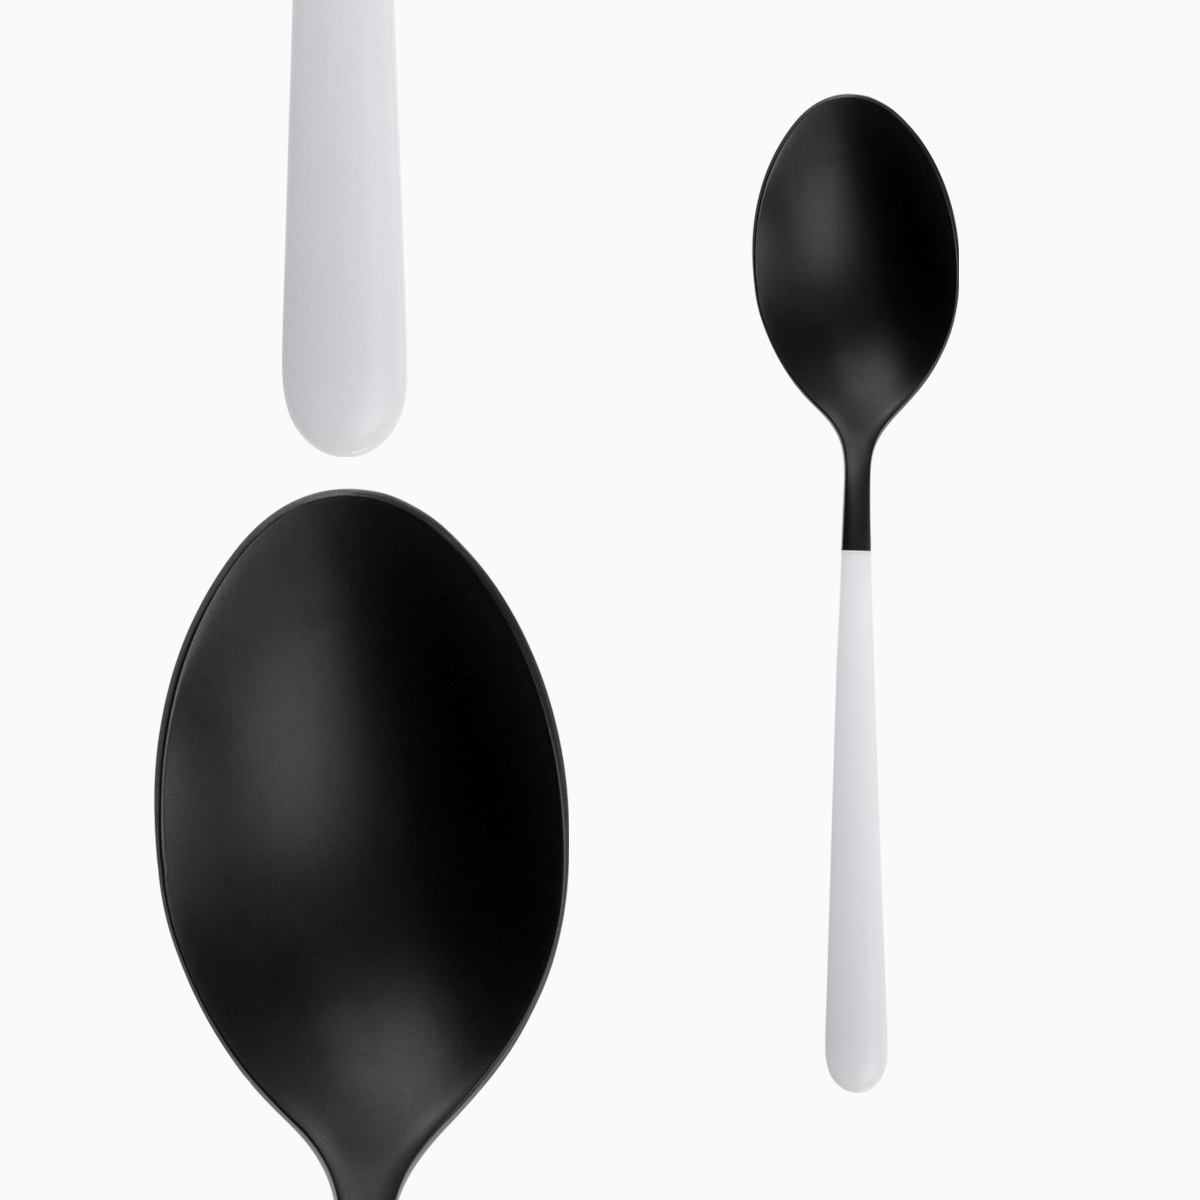 Table Spoon - Faro Black / White